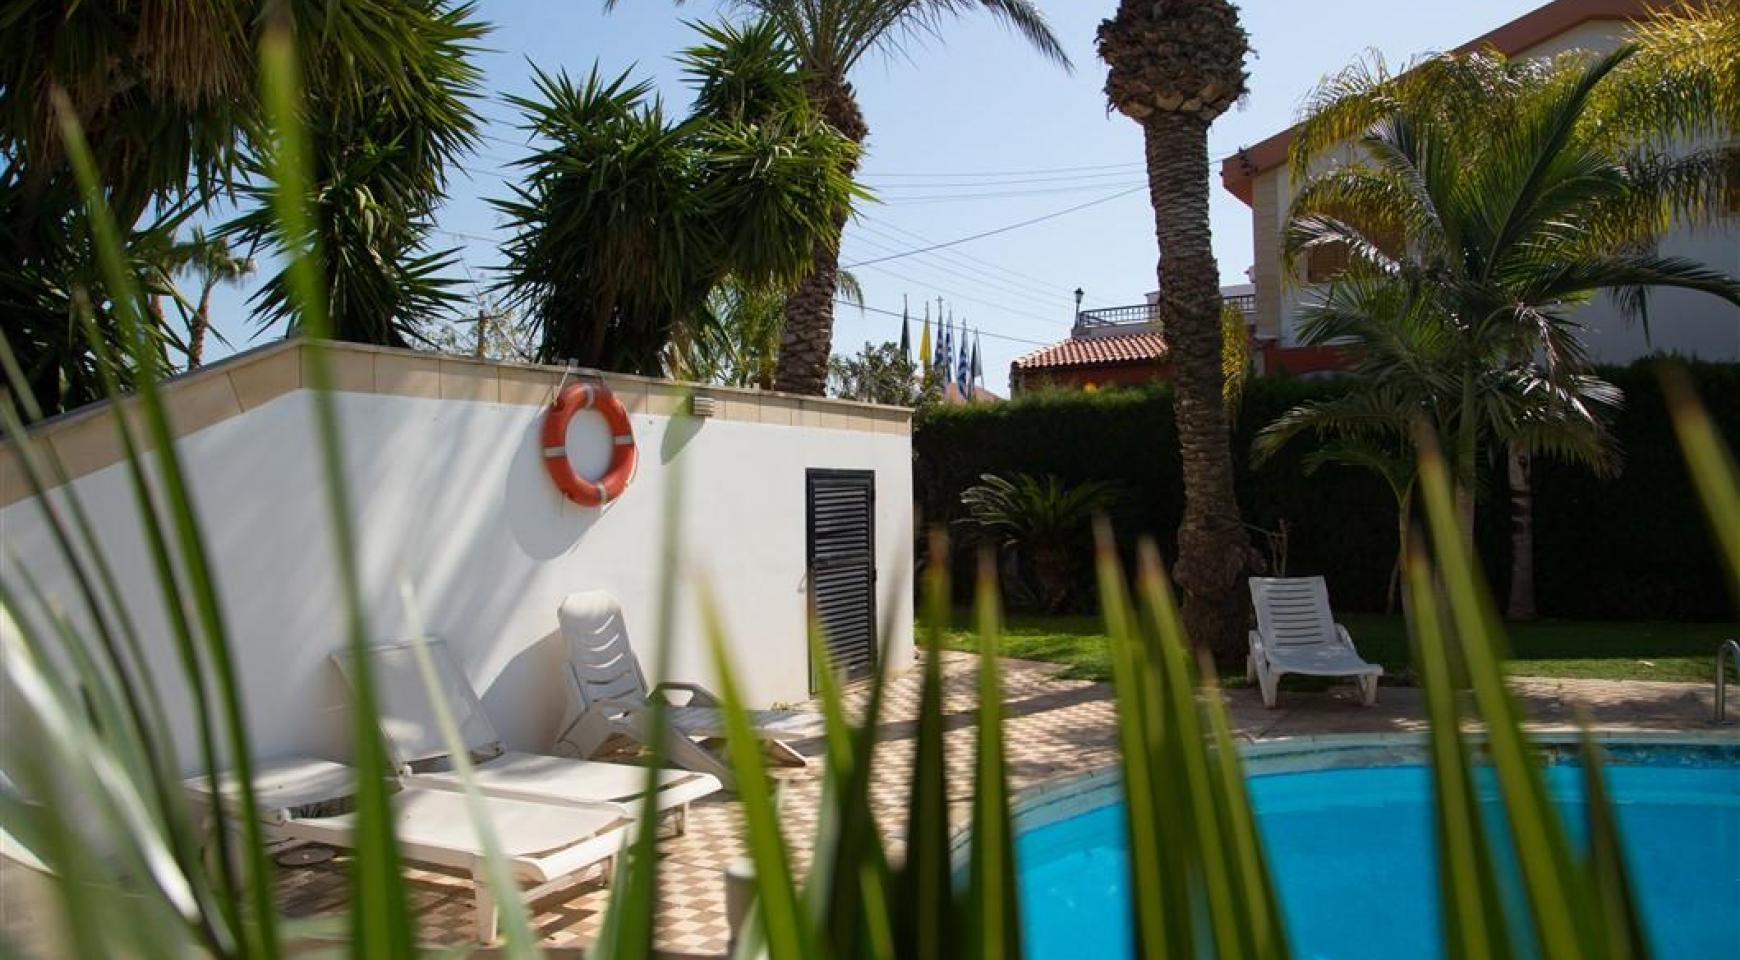 4 Bedroom Villa in Germasogeia Area - 4